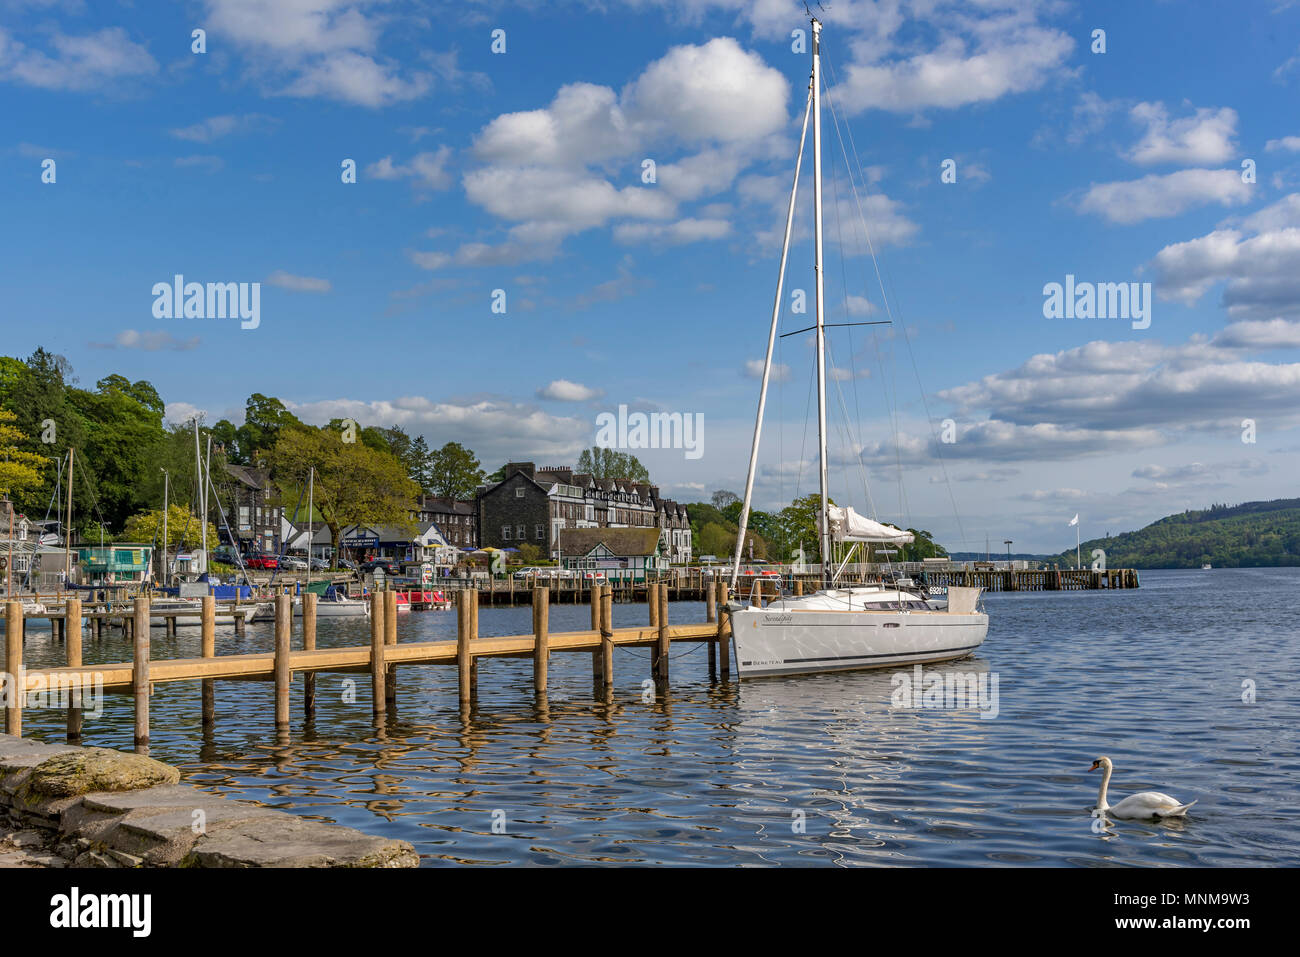 Ambleside evening with yacht and swan - Stock Image